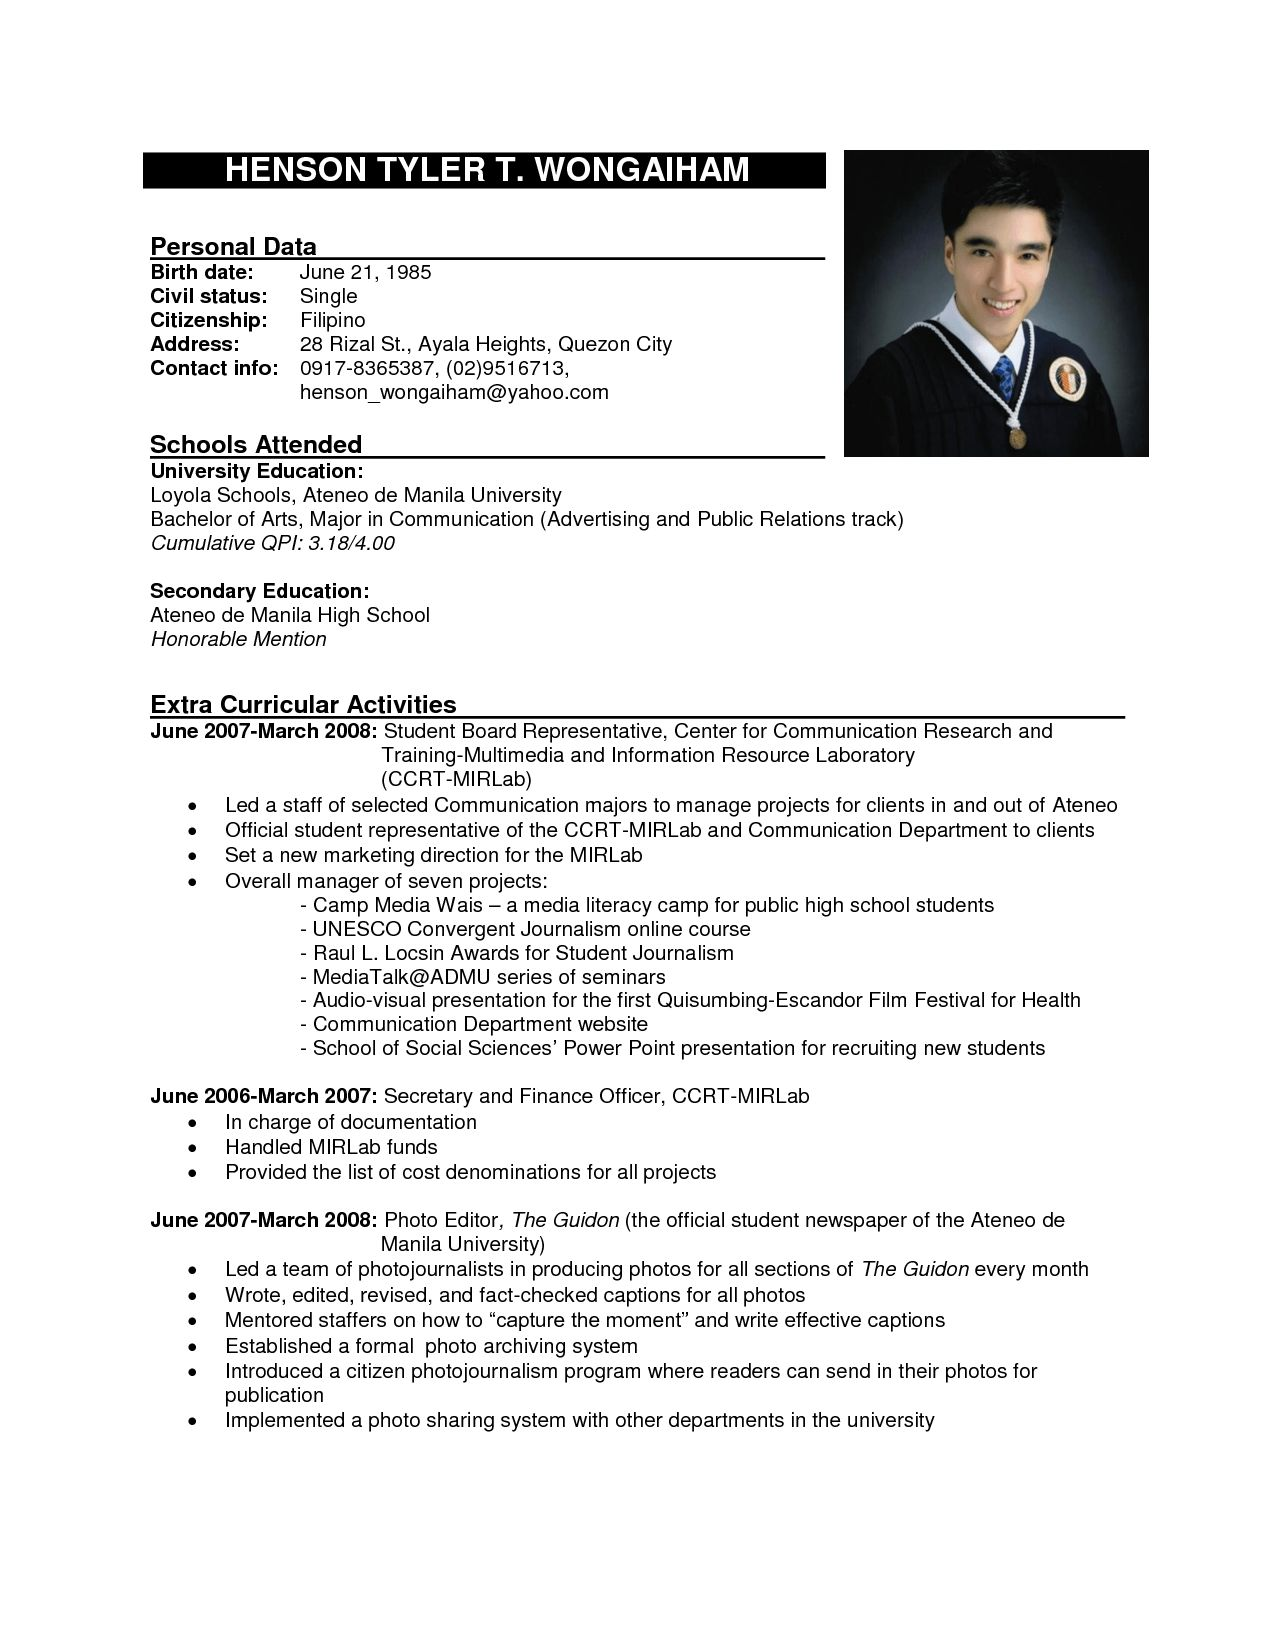 Resume Format Samples Marvellous Resume Sample Format Formal Training And Official